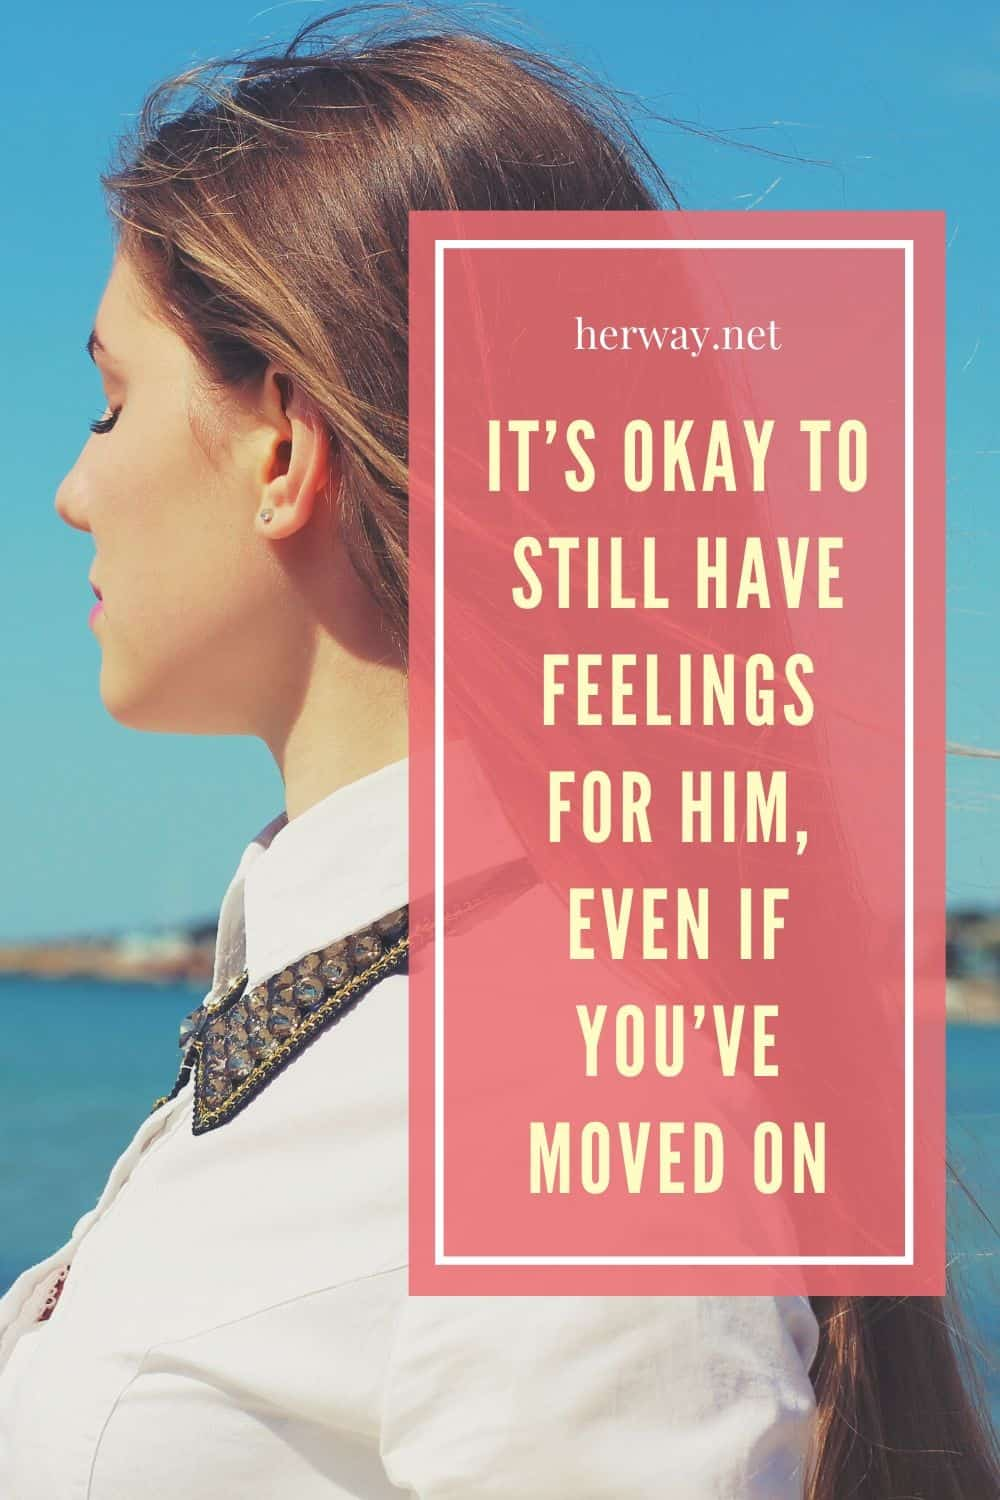 It's Okay To Still Have Feelings For Him, Even If You've Moved On